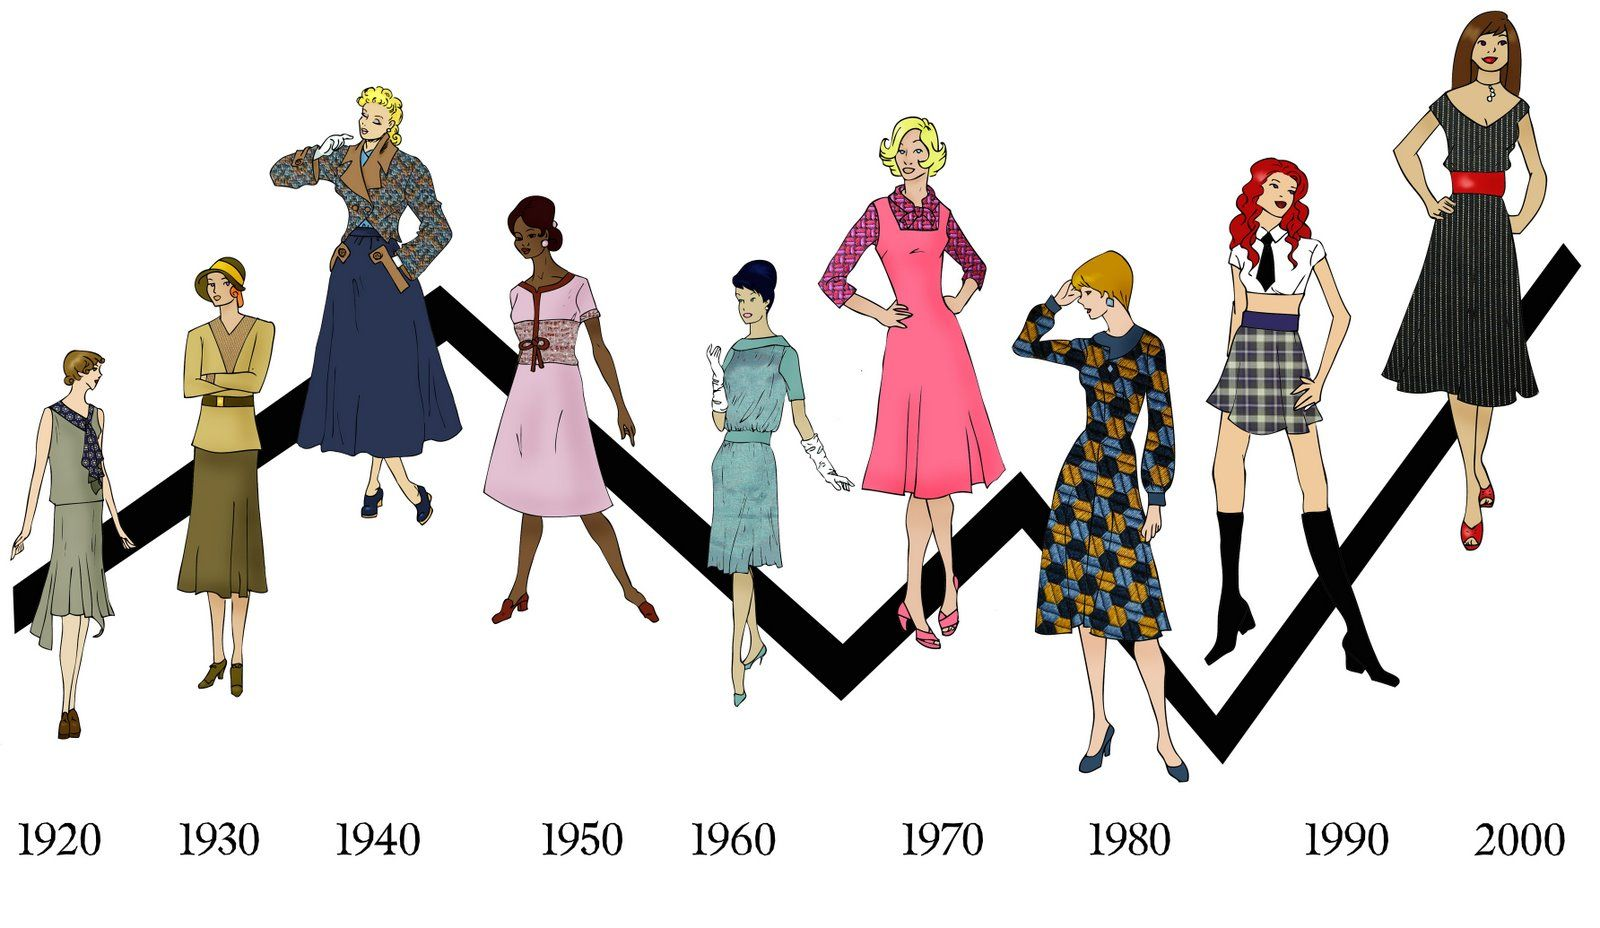 Fashion changes in the 20th century 63